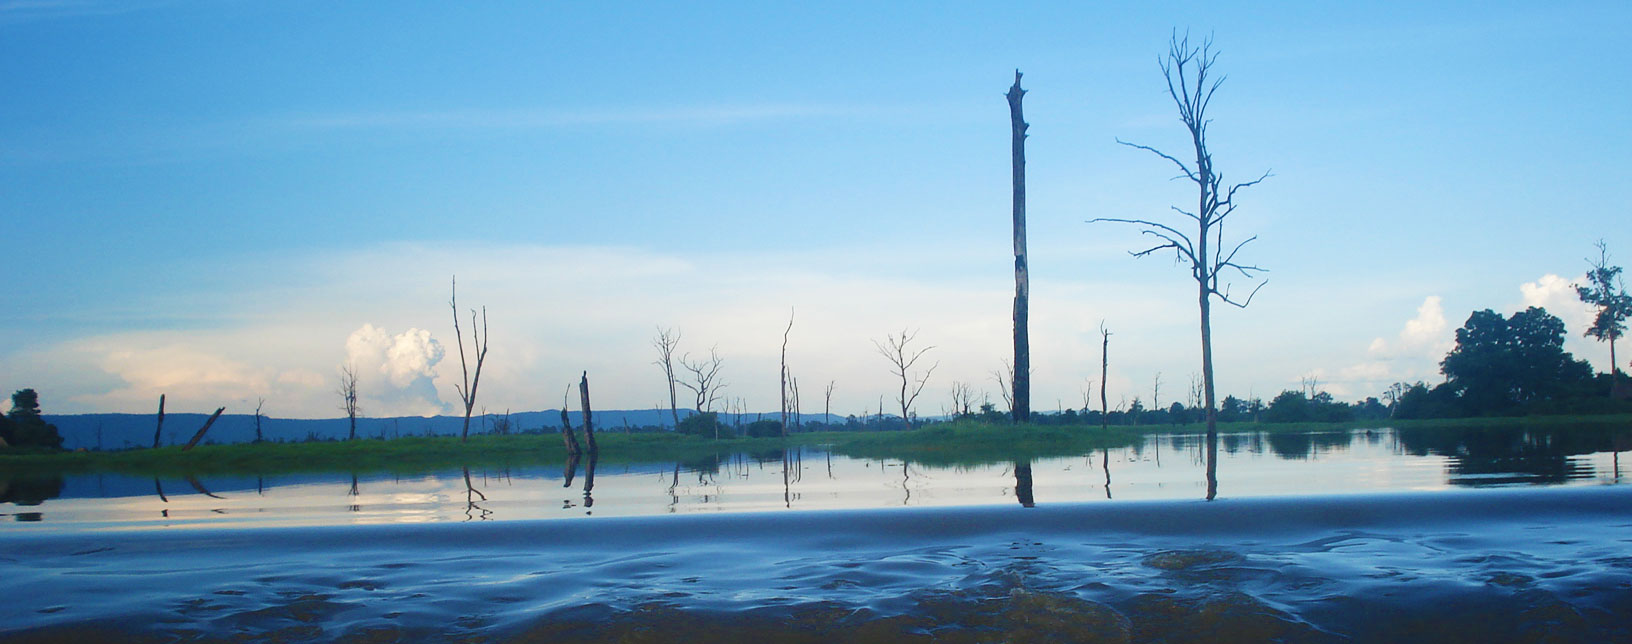 The Flooded Forest in Anlong Veng